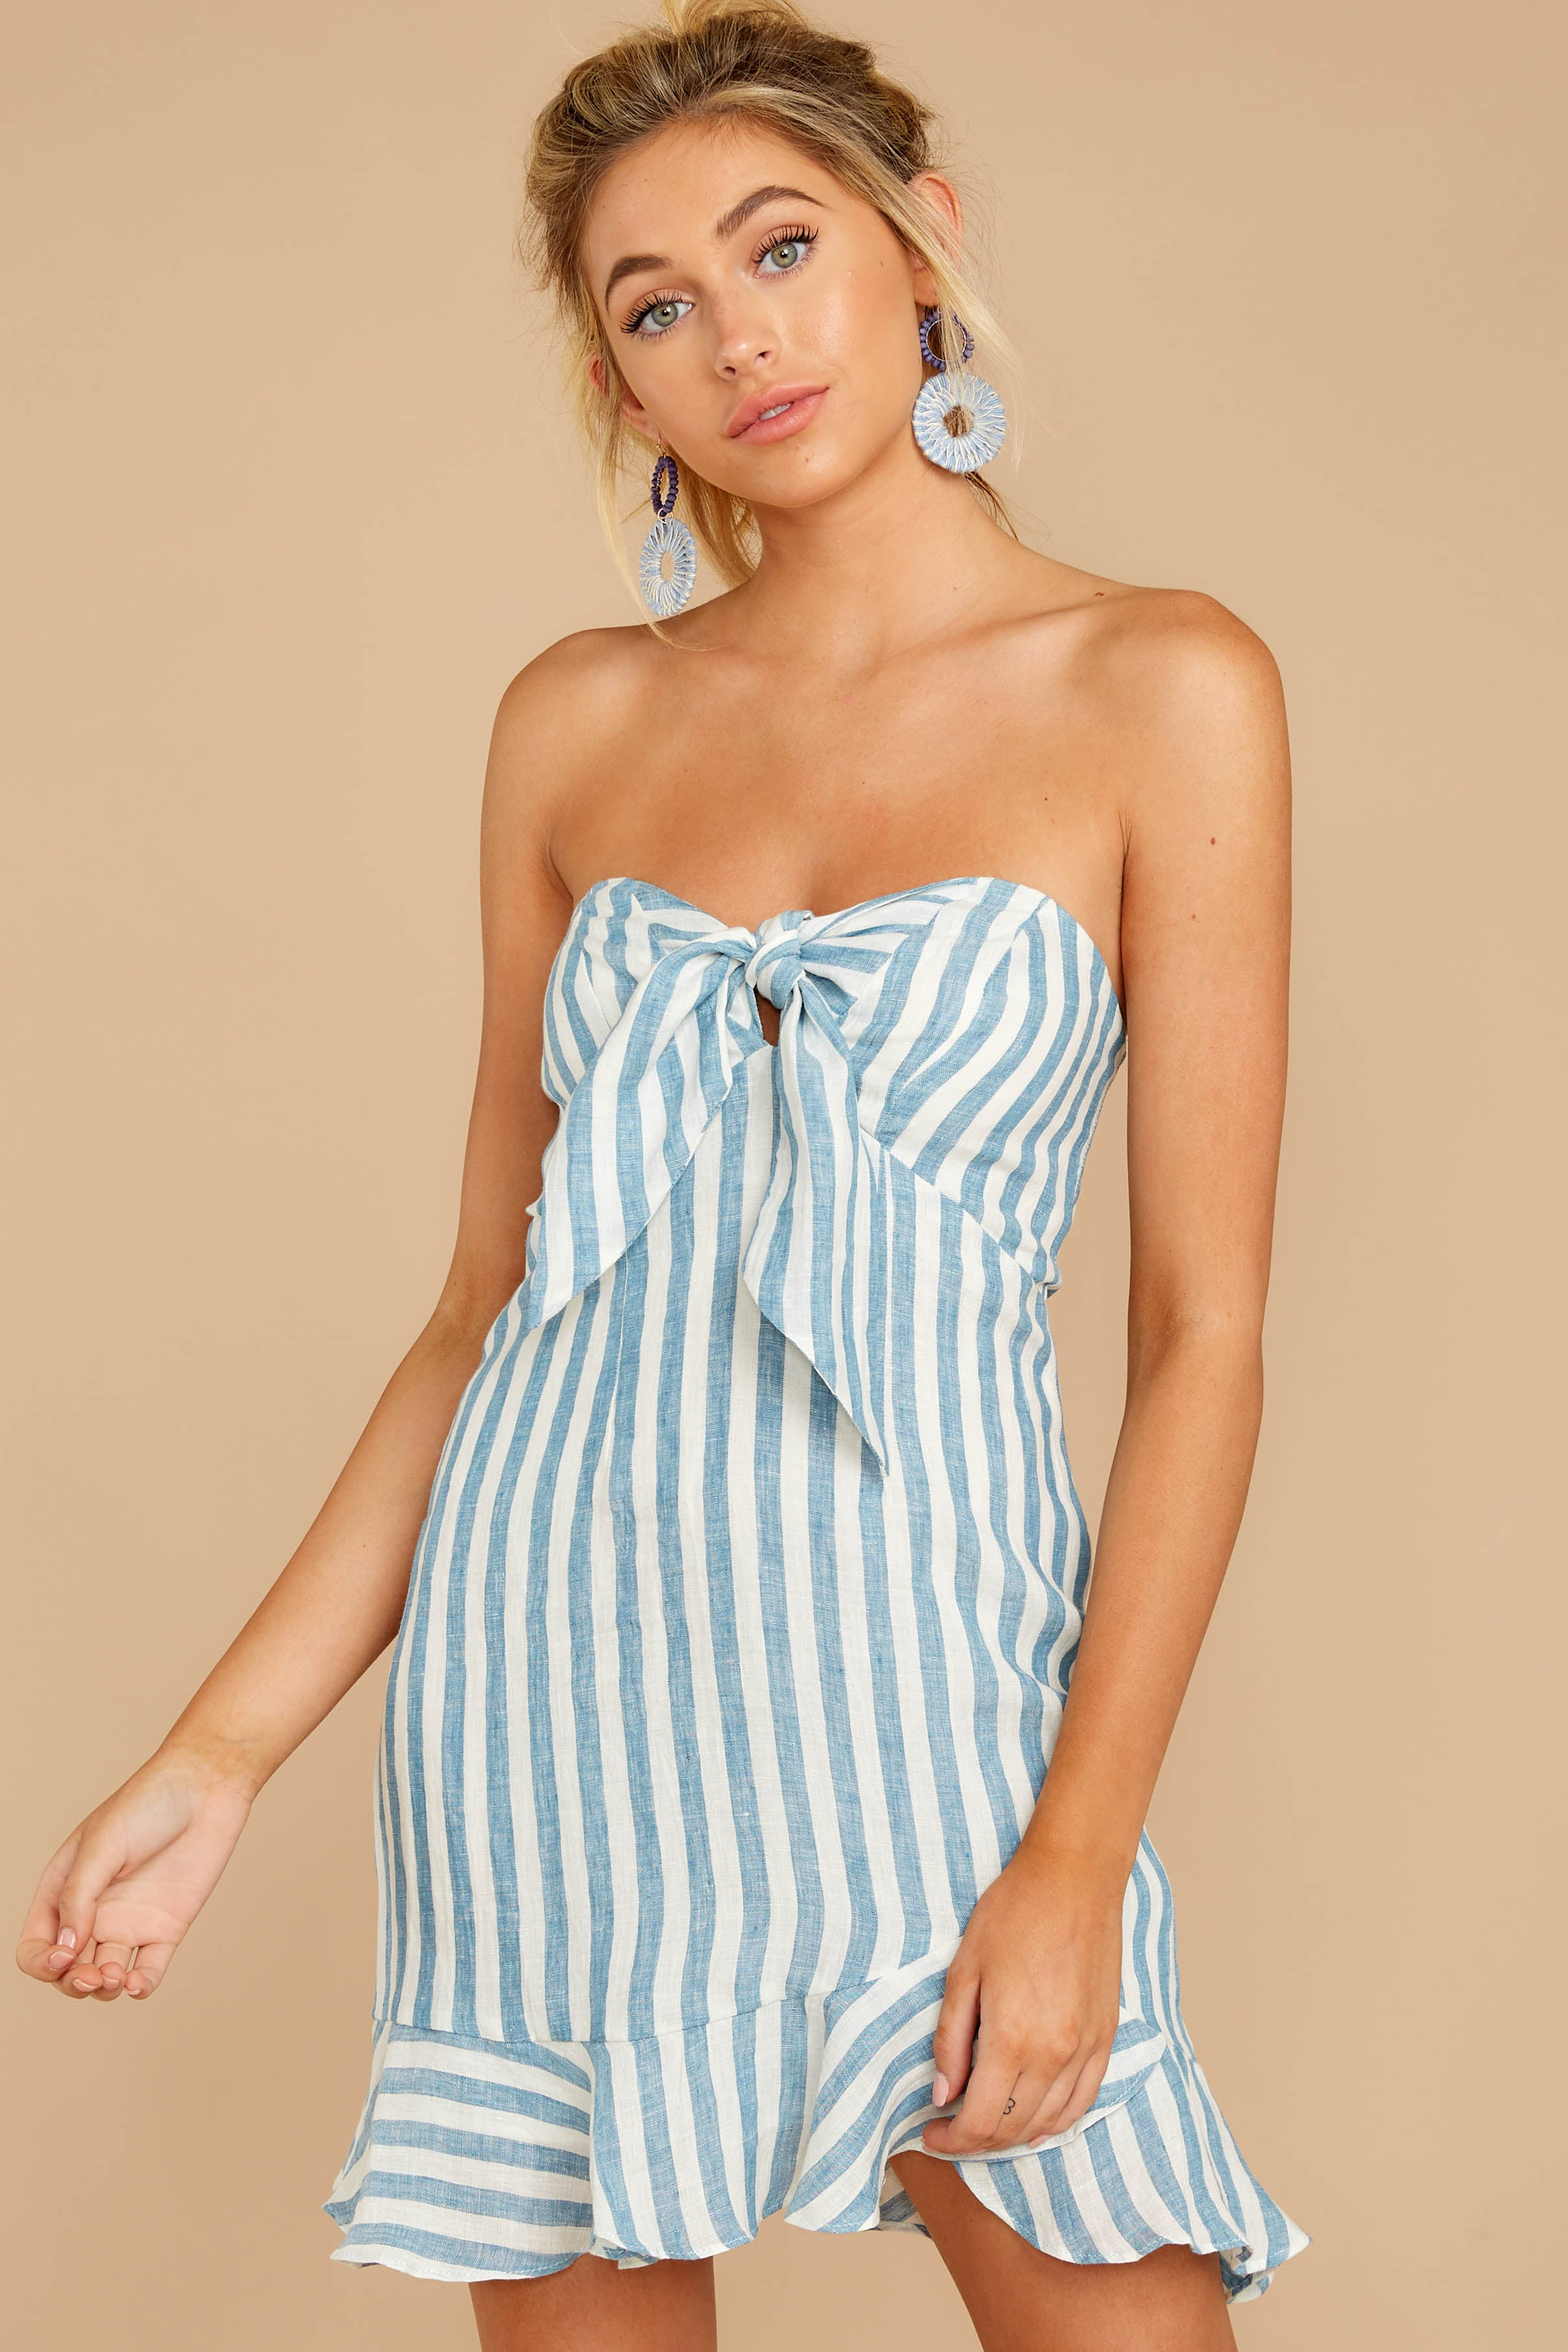 6 Ahoy There Light Blue Stripe Dress at reddress.com